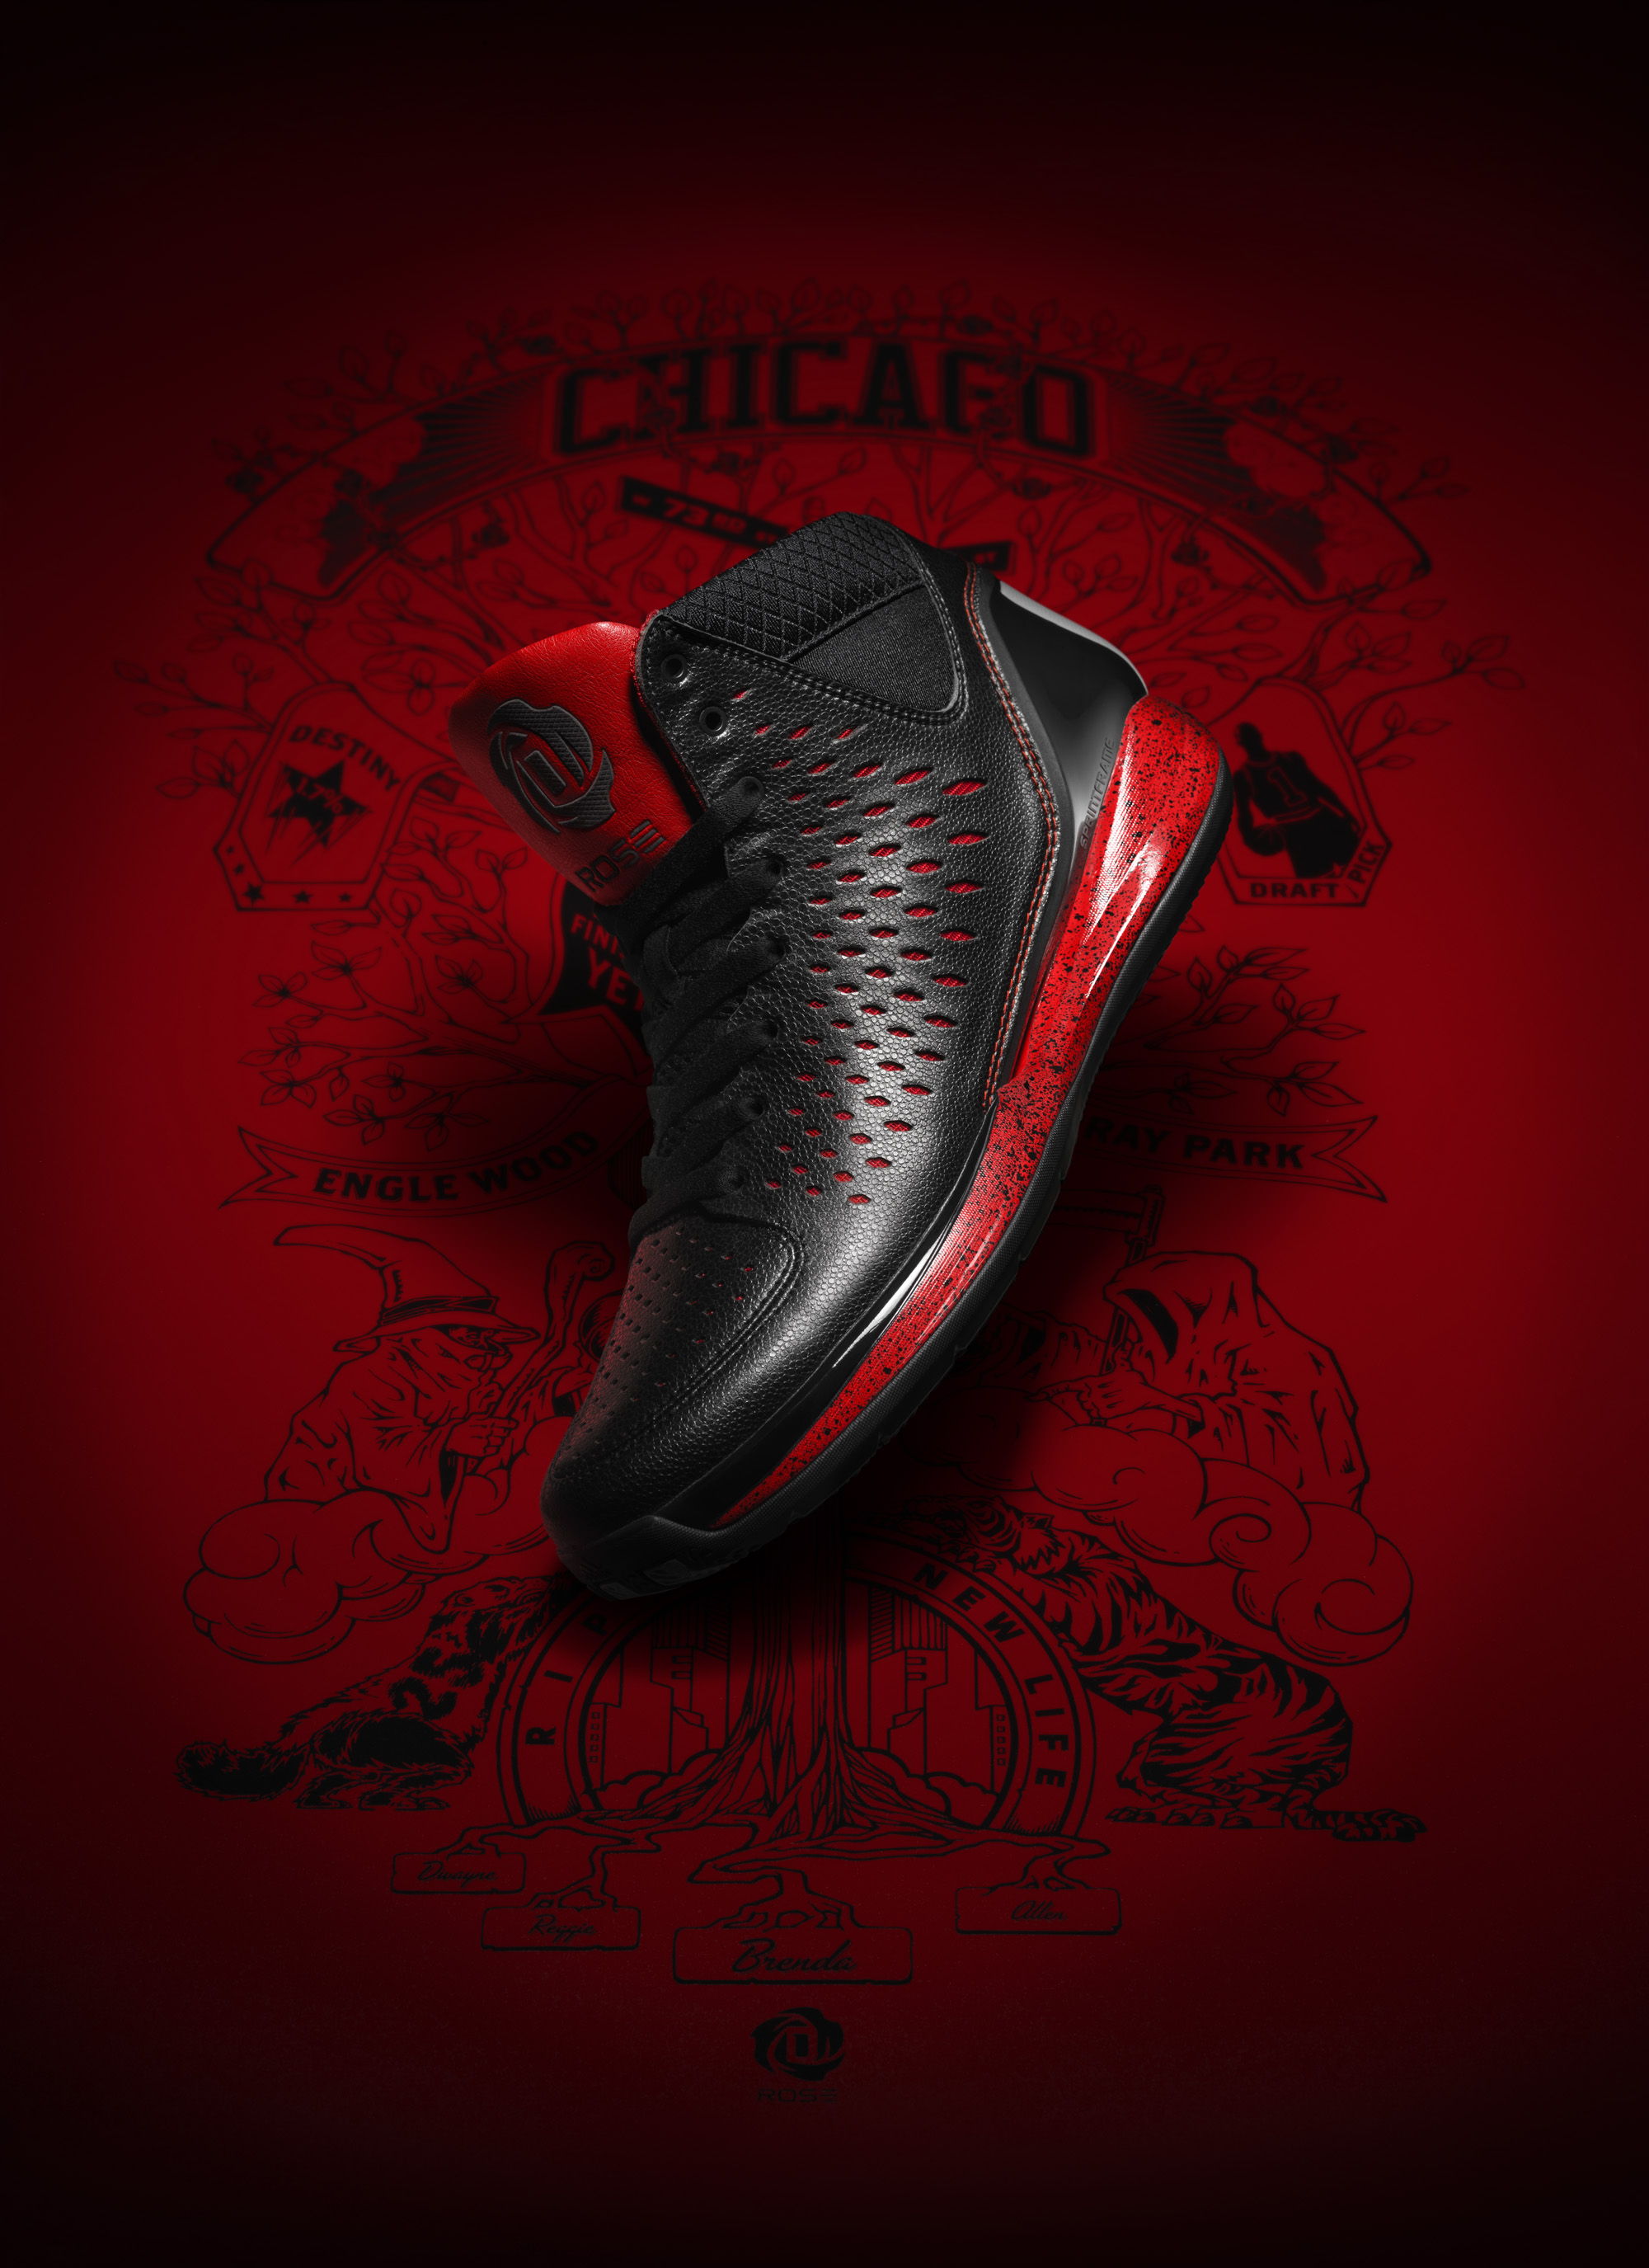 Adidas introduces new d rose 3 sneaker derrick rose cries of course voltagebd Choice Image